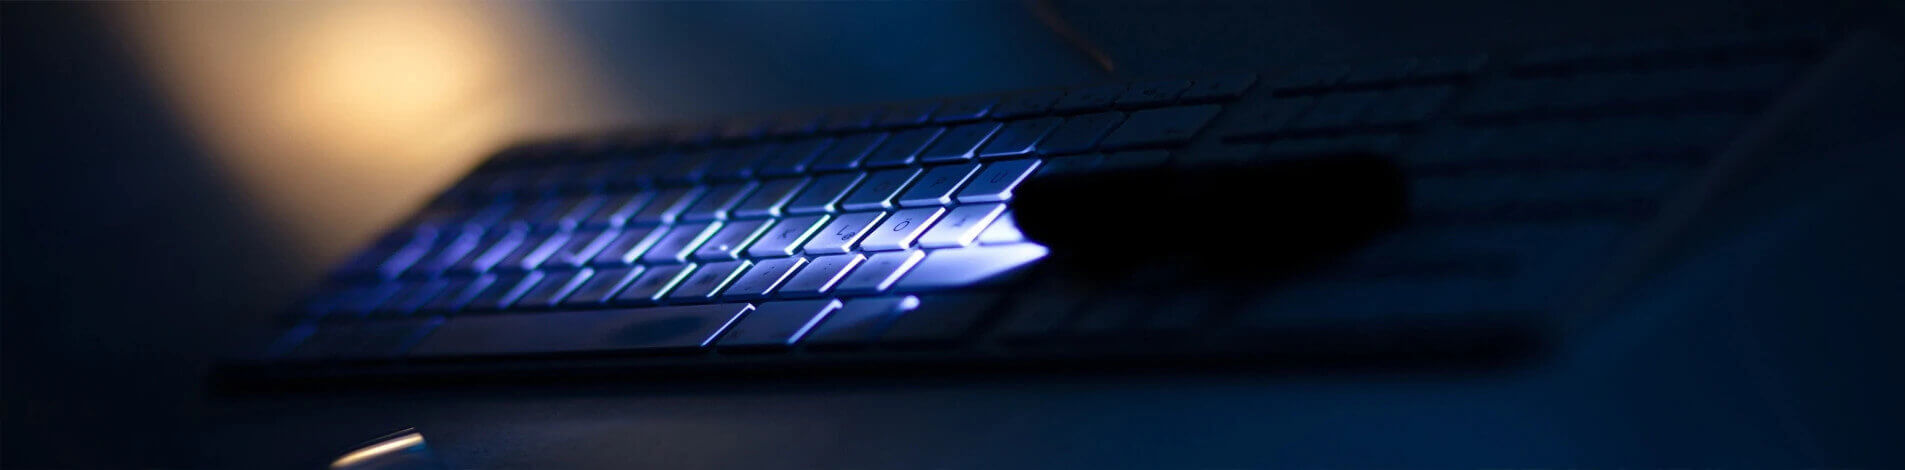 Keyboard being illuminated by a torch